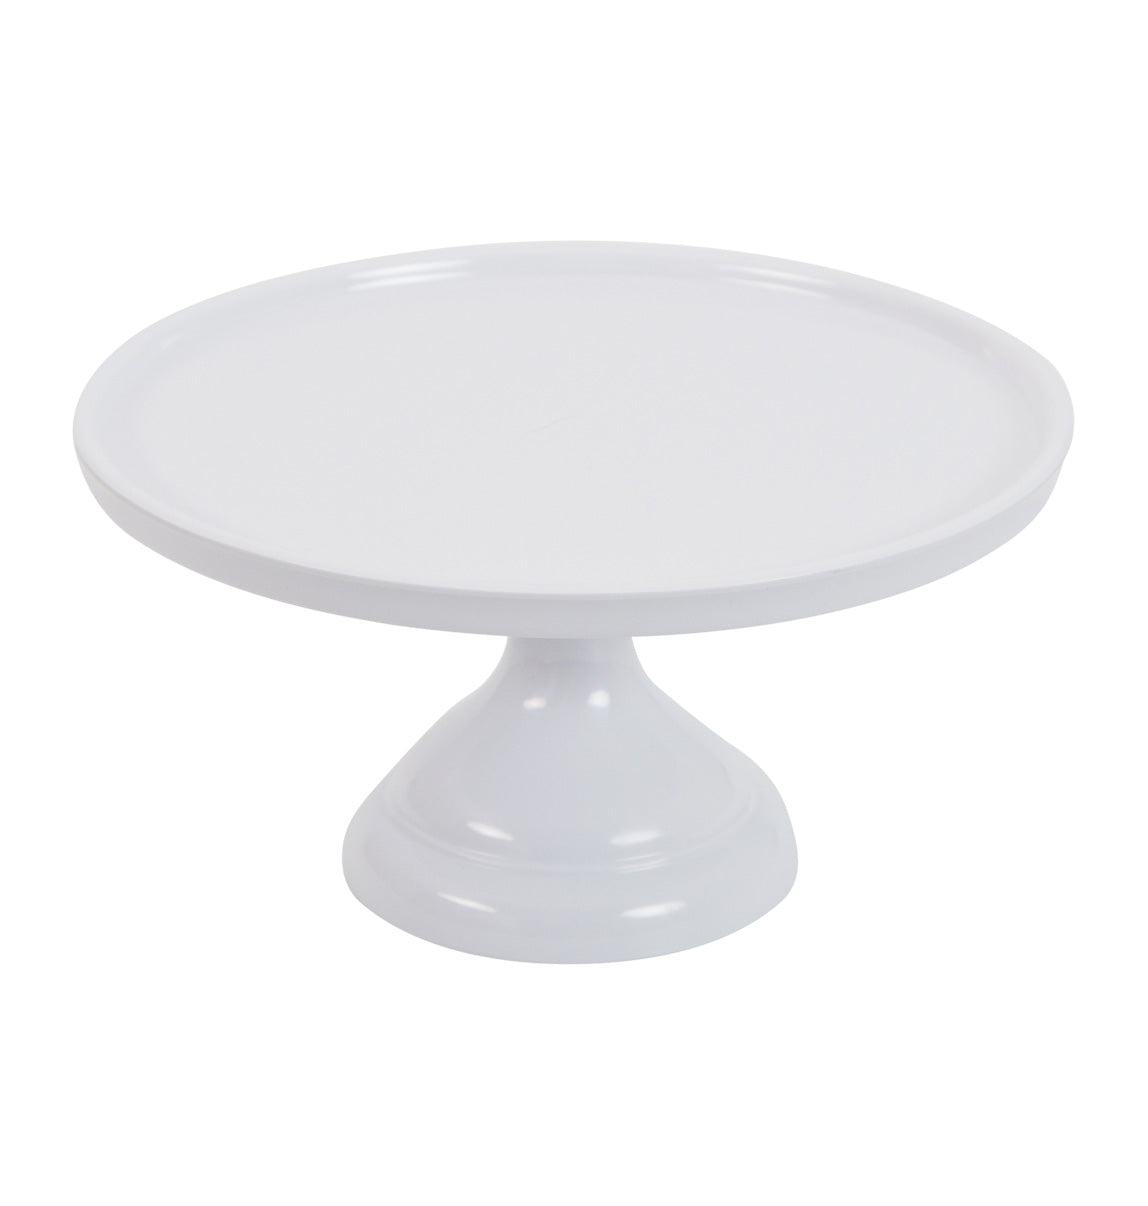 Classic Small Cake Stand - White